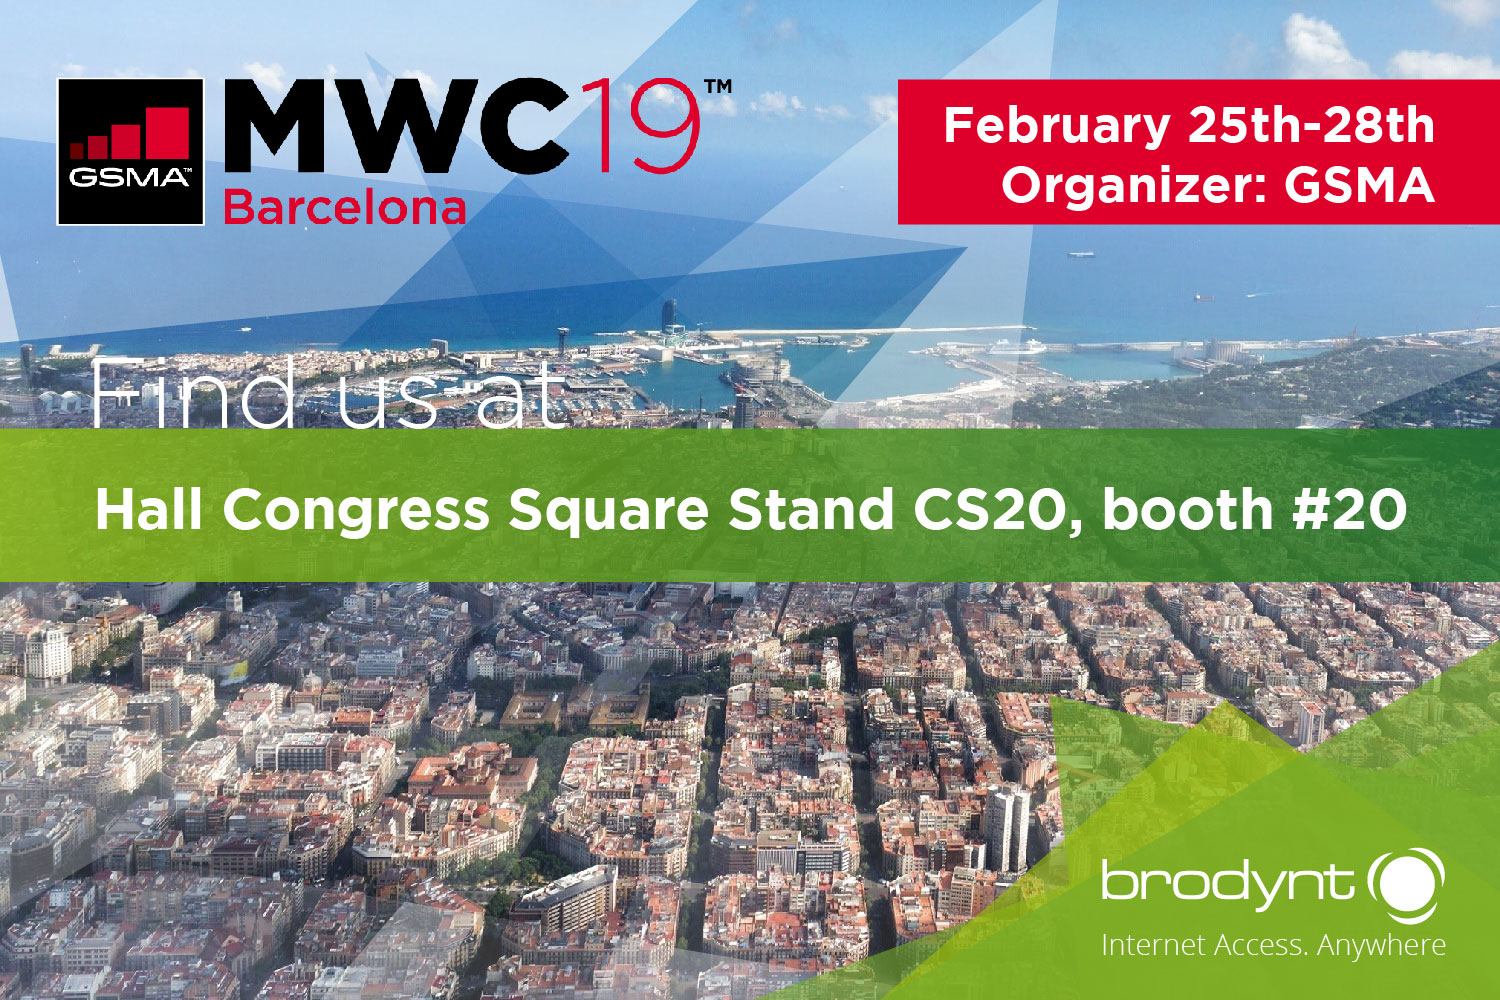 Brodynt at Mobile World Congress Barcelona 2019